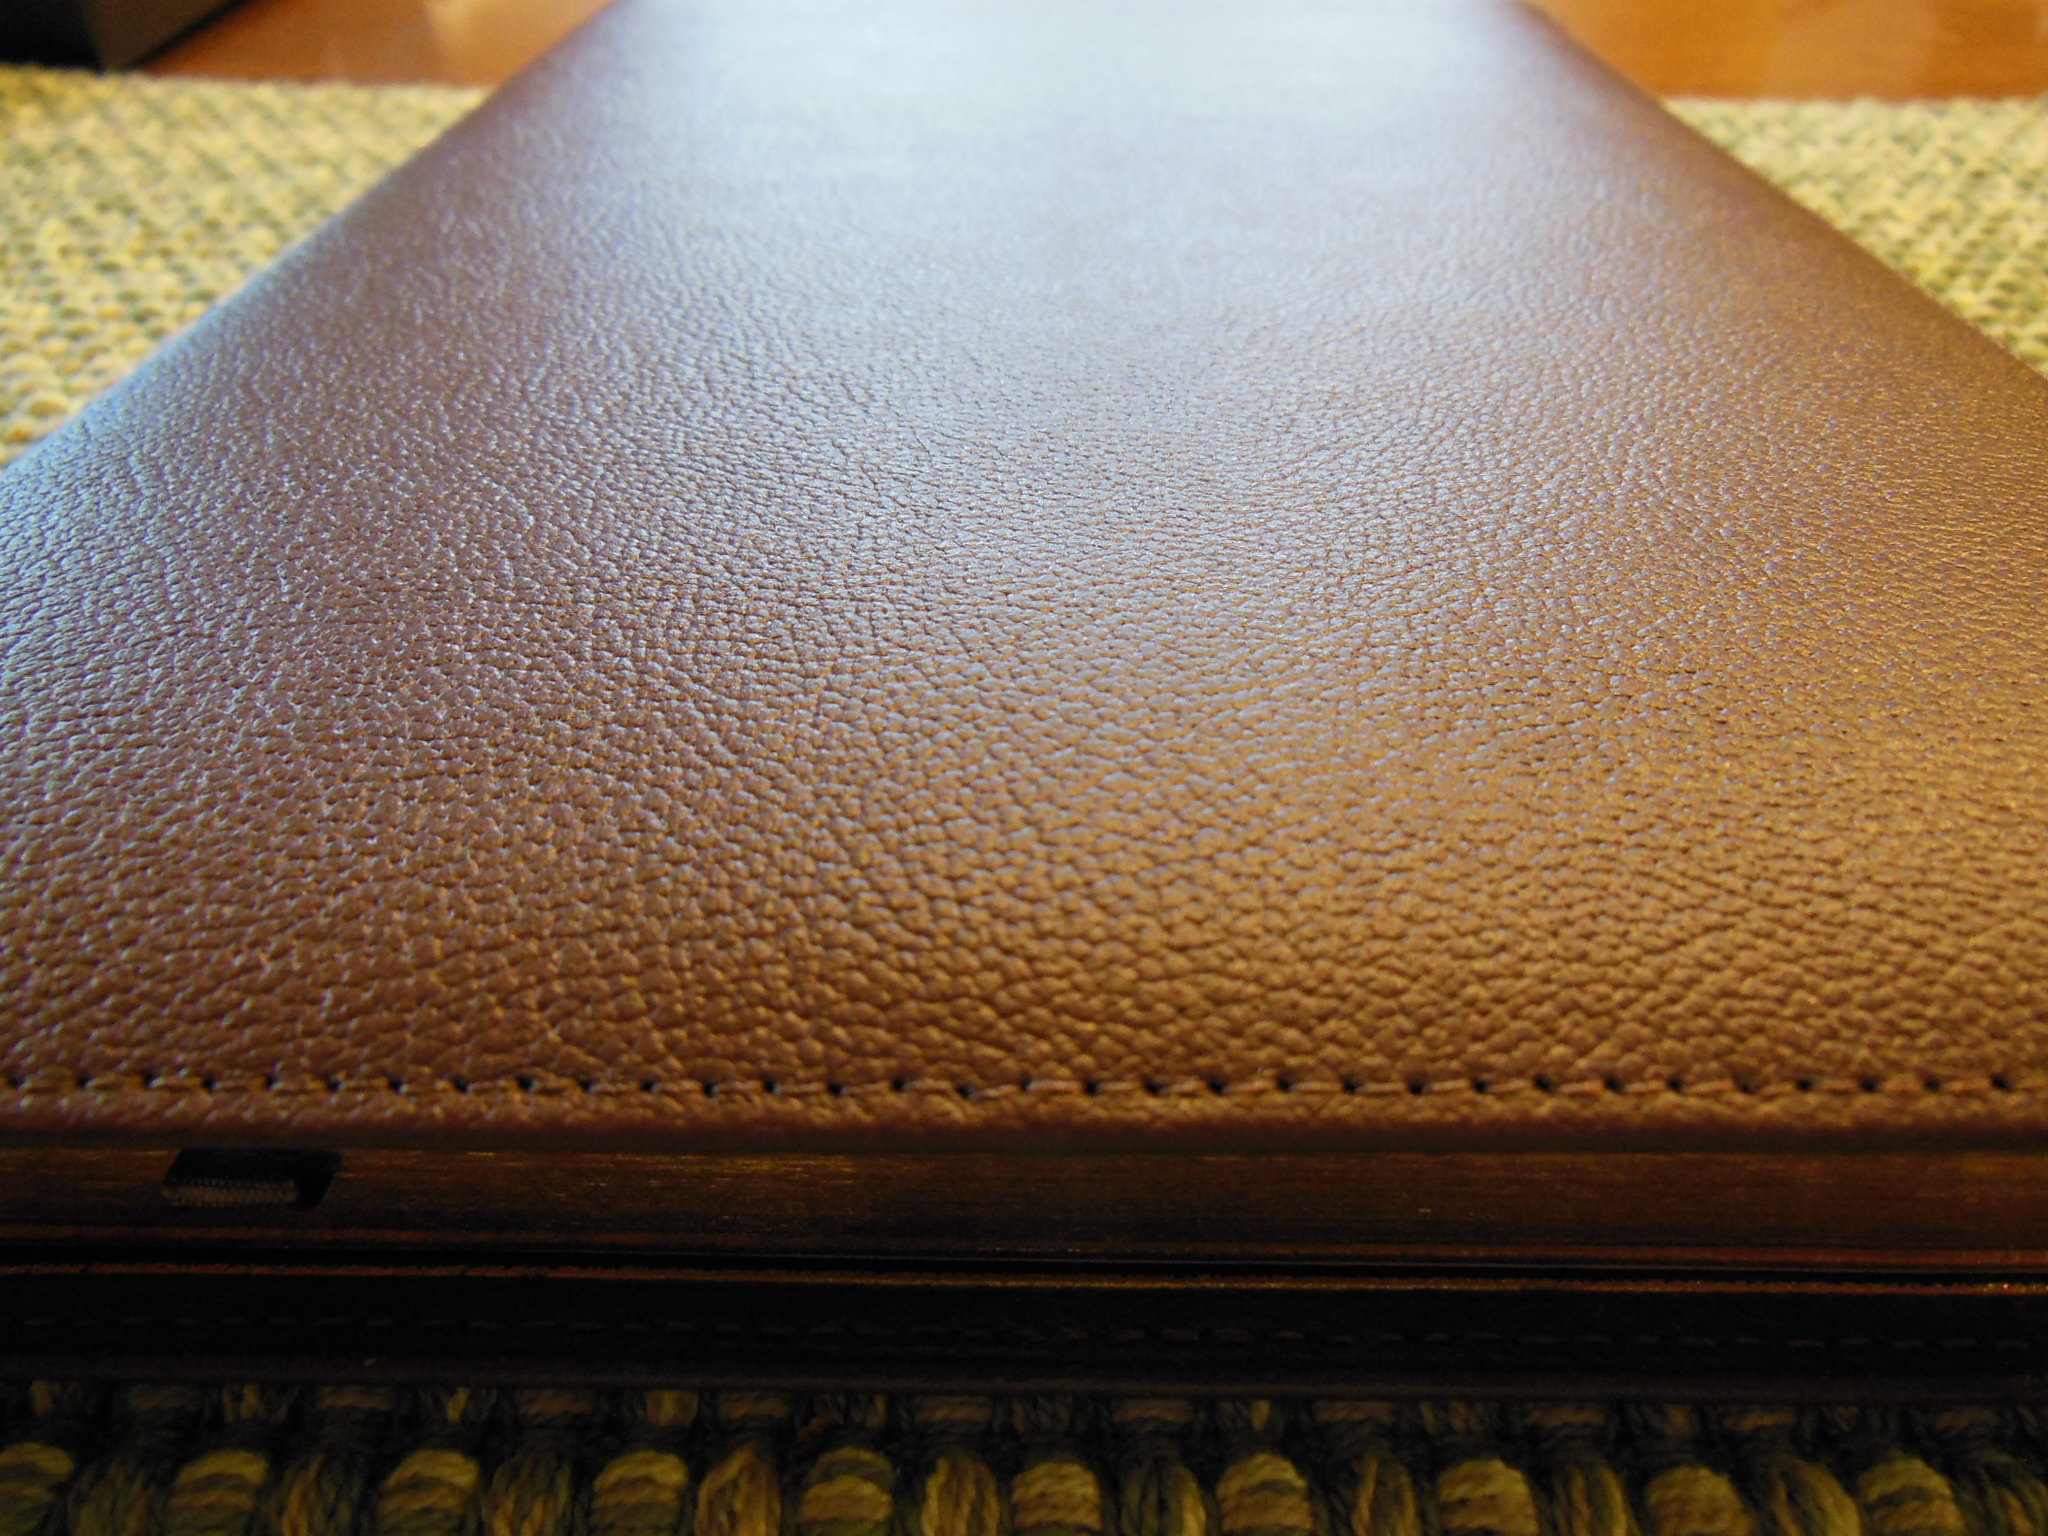 A Thinline Bible that Will Outlast You, the Crossway E S V